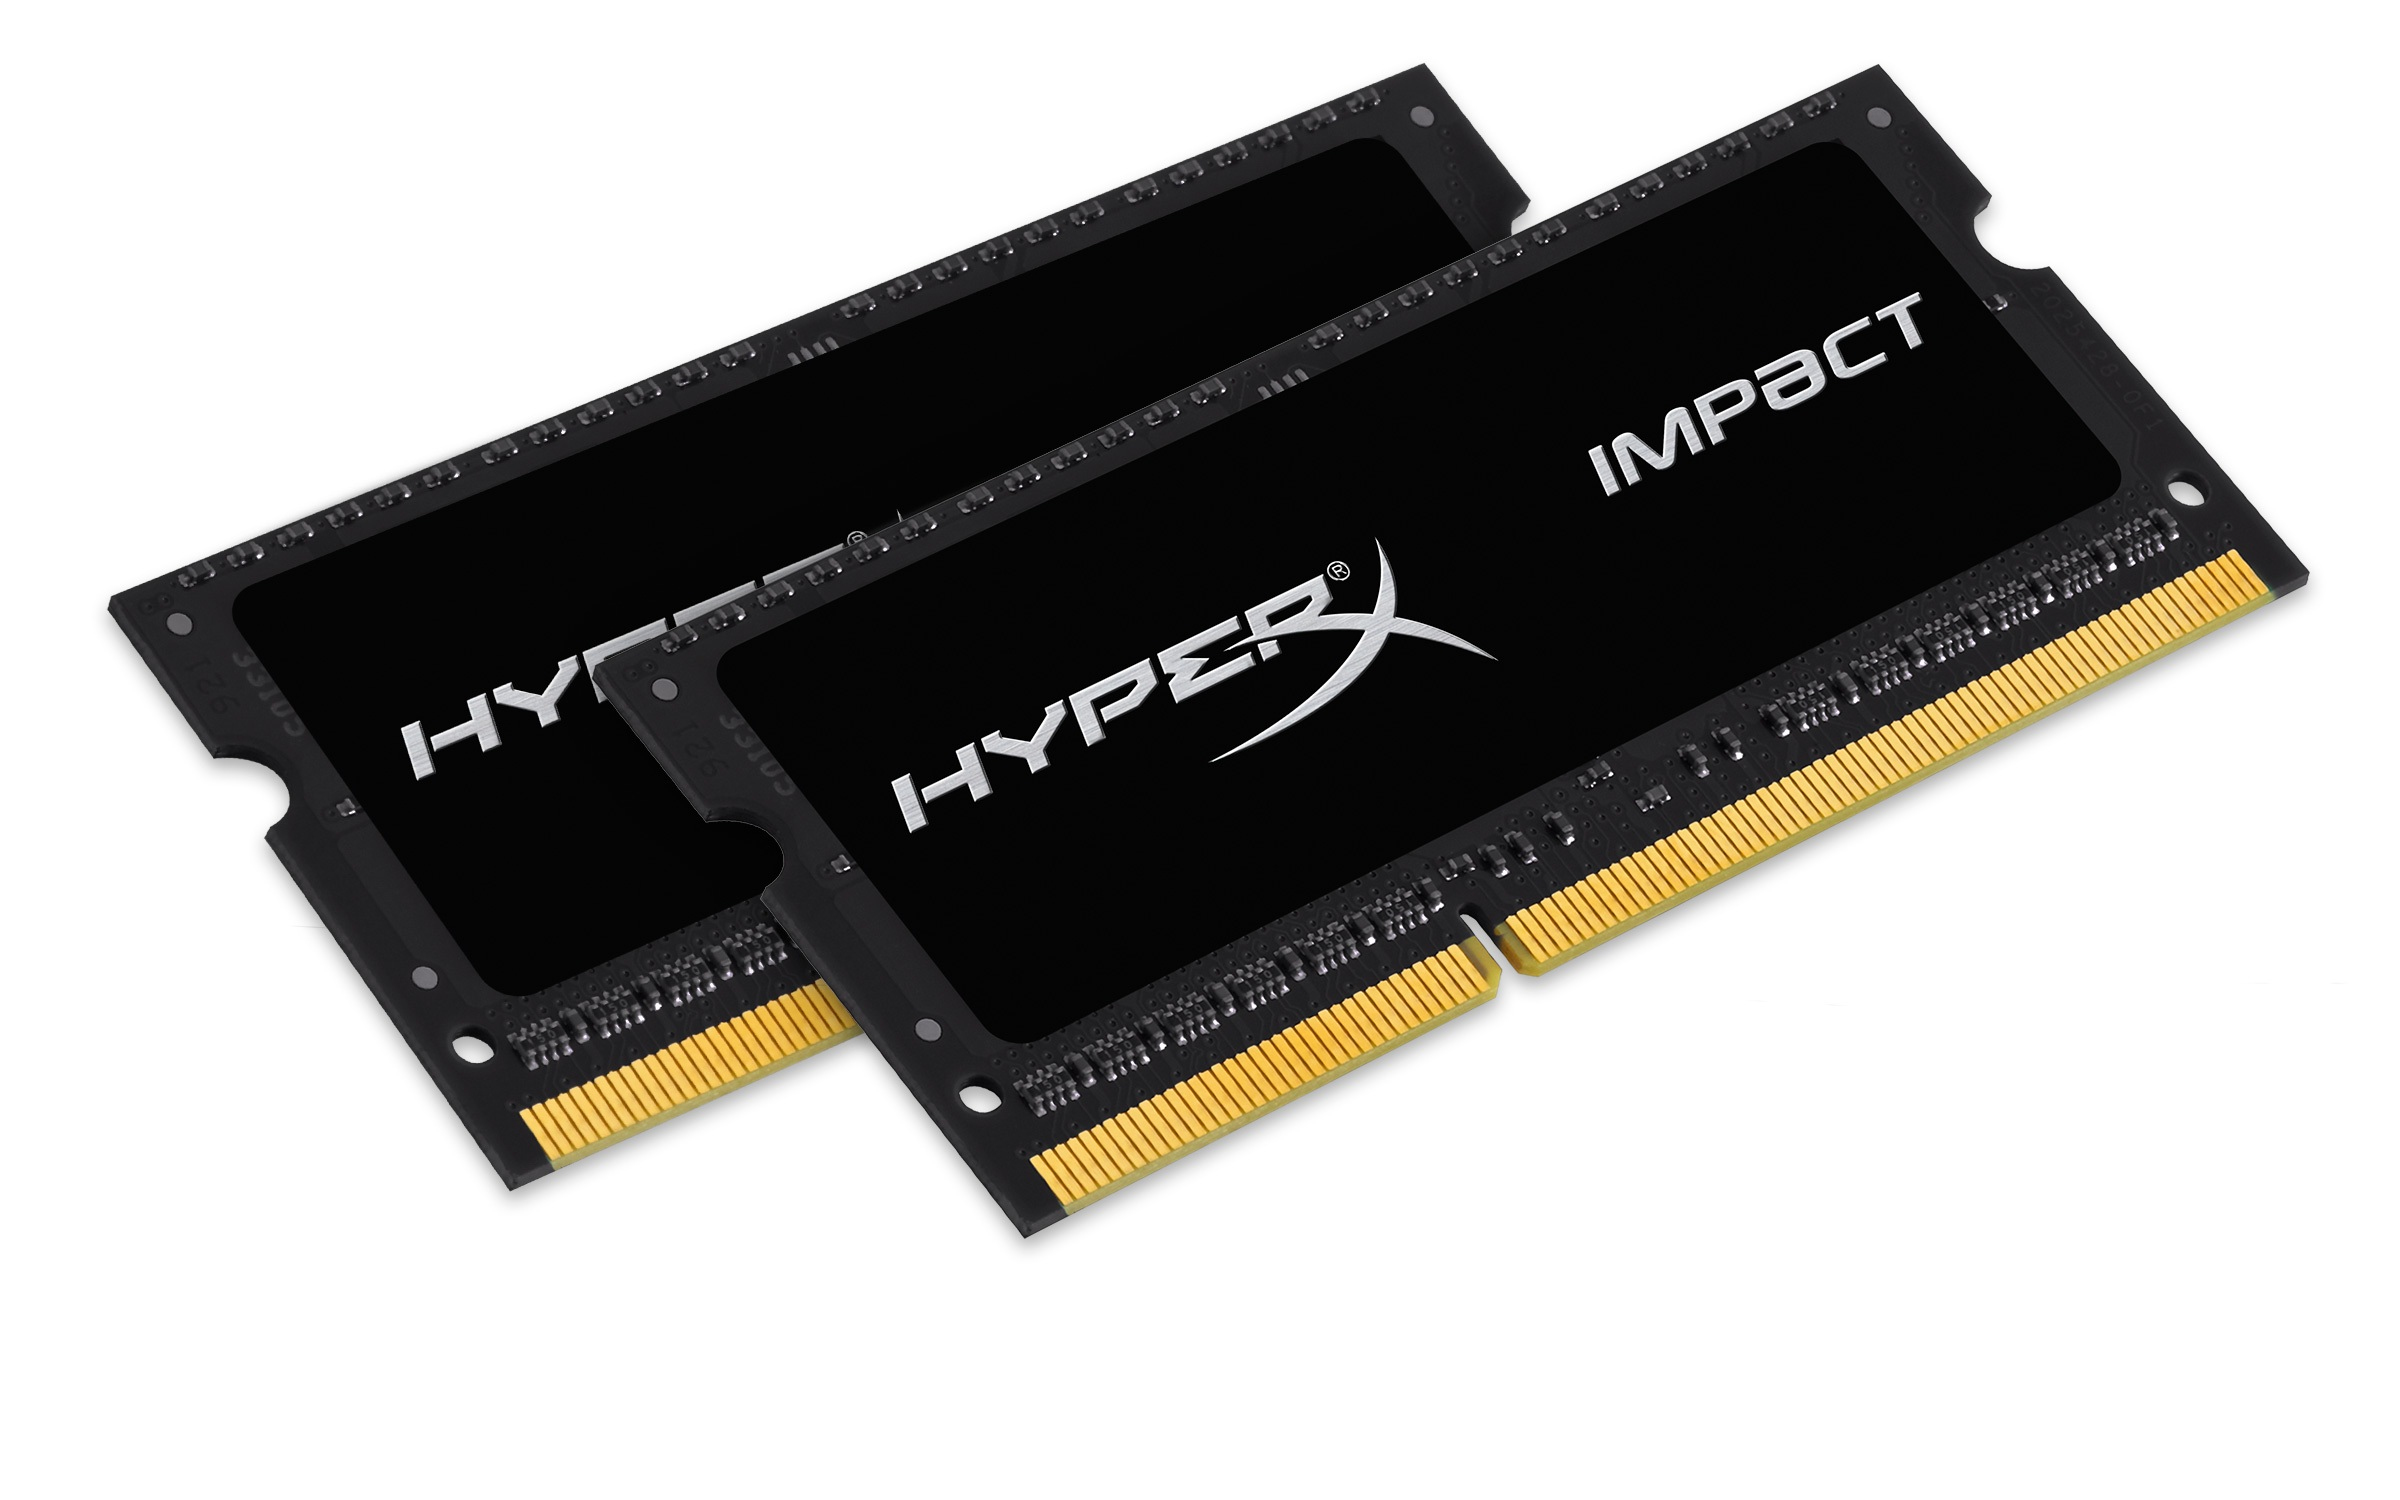 price of 16GB 1600MHz DDR3L CL9 SODIMM (Kit of 2) 1.35V HyperX Impact on ShopHub | ecommerce, price check, start a business, sell online